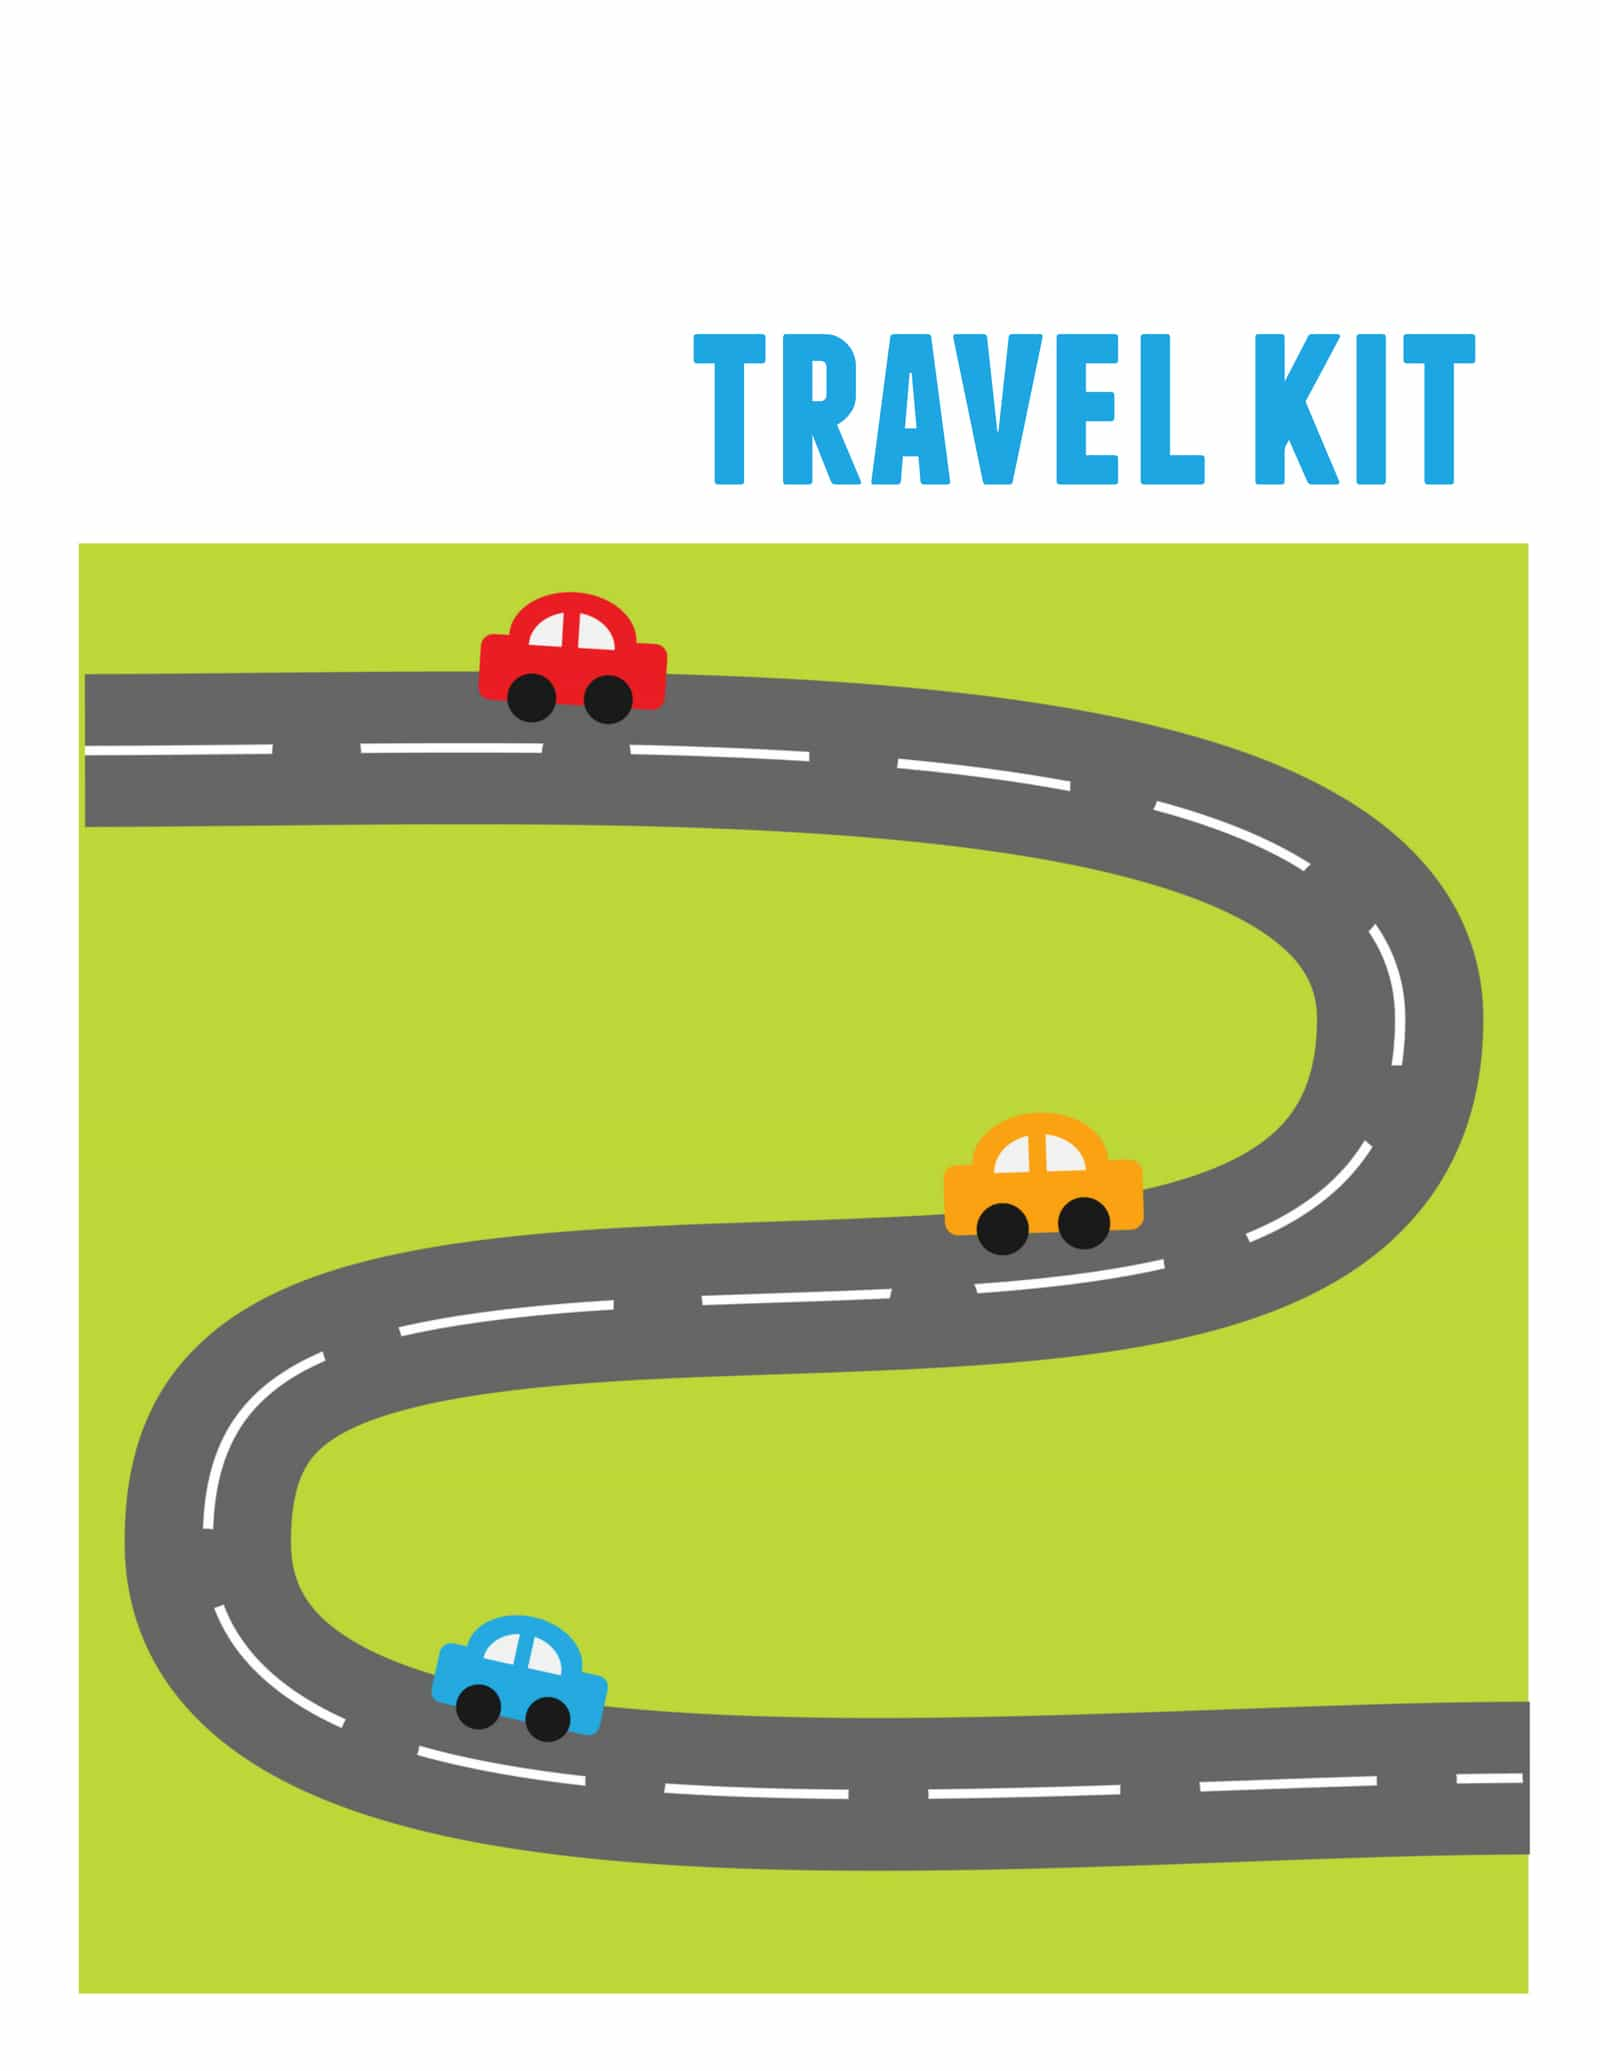 Free Printable Kids Travel Kit template - How to make a simple Kids Travel Kit Binder that will keep them busy and happy with fun activities for long road trips. Includes an attached marker and holder, plus 150+ free printable kids travel activities!